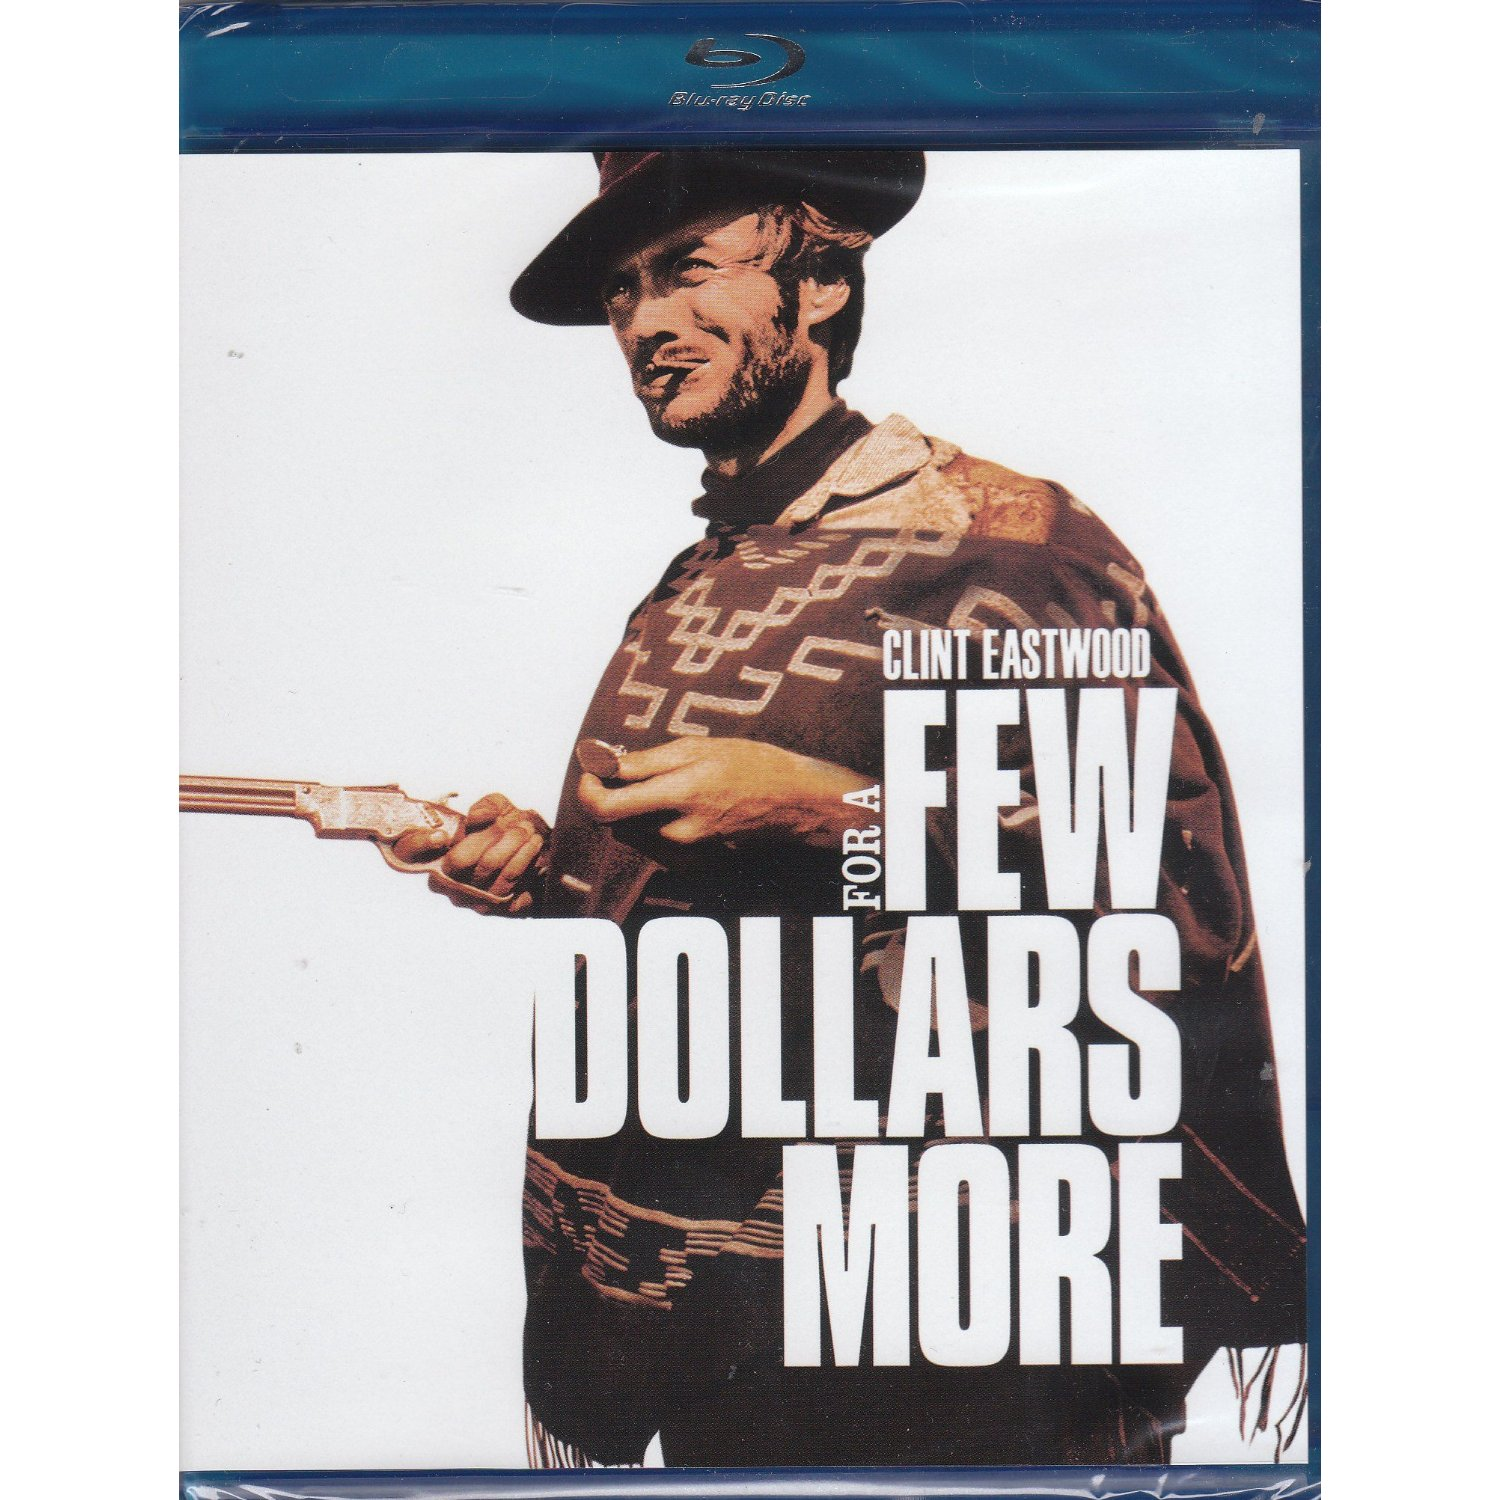 Few Dollars More Bluray